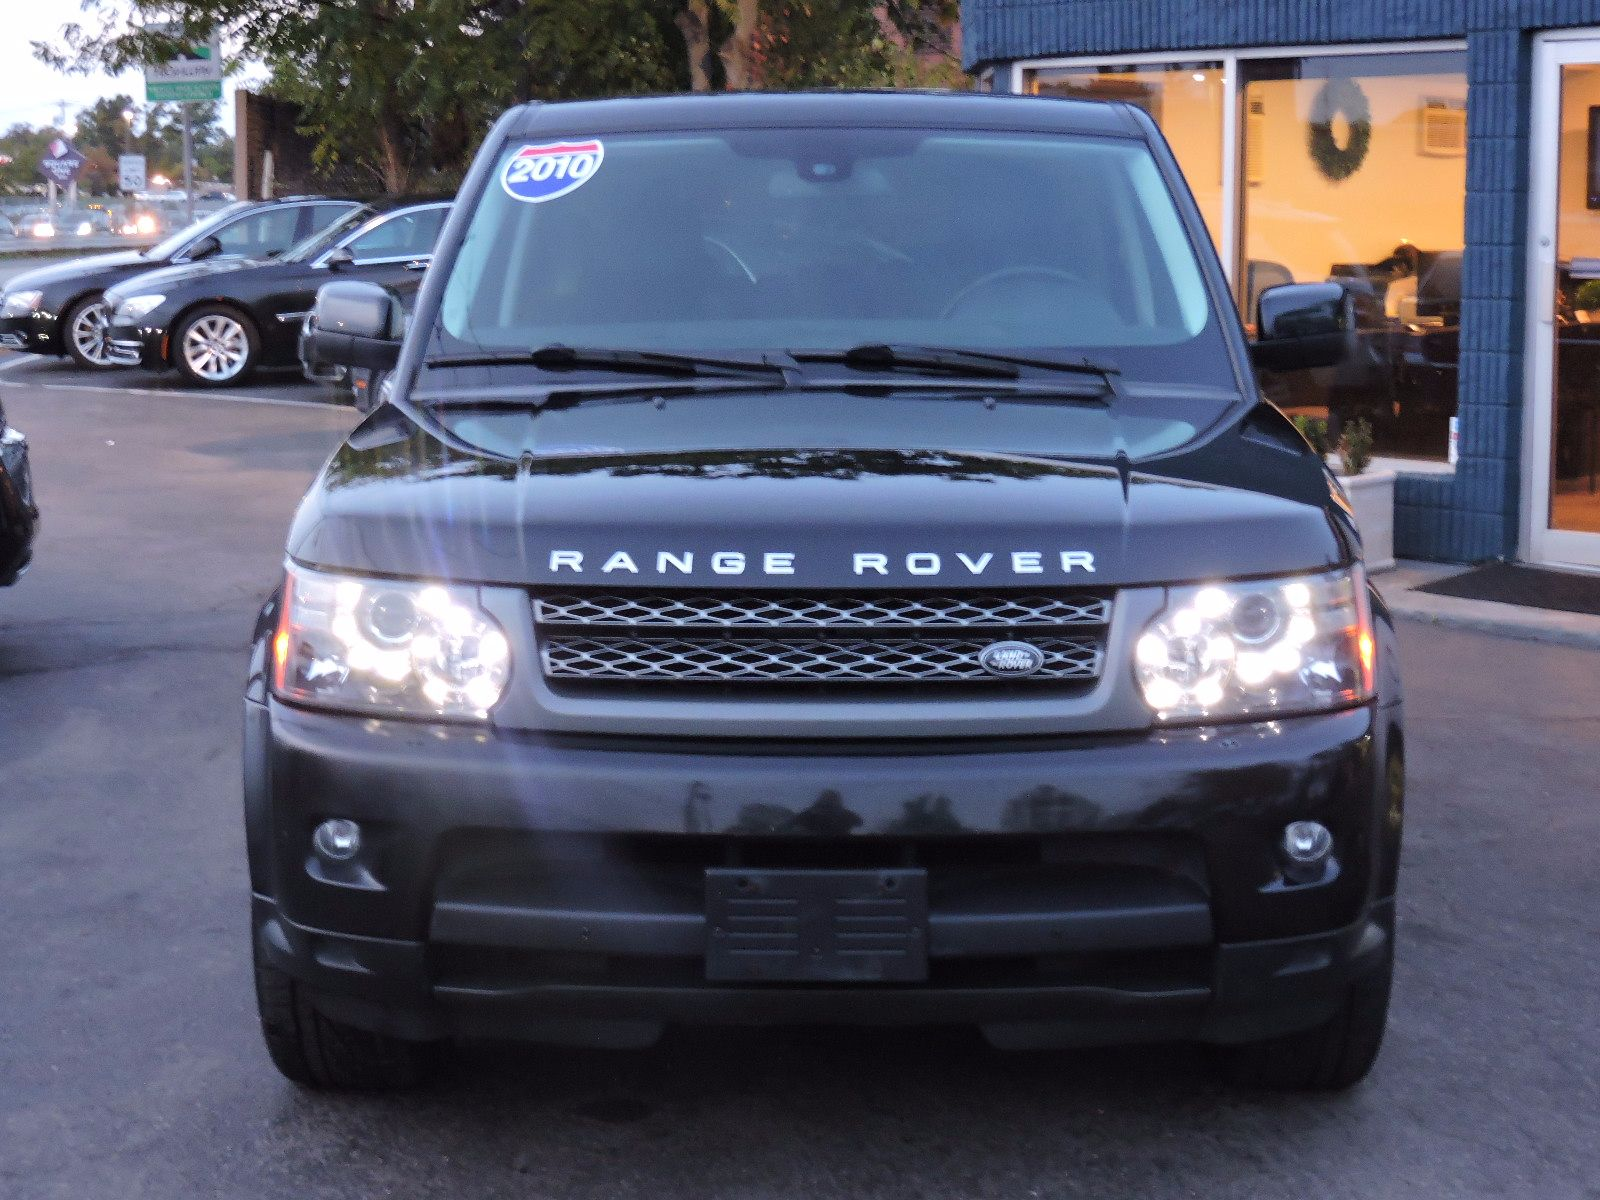 2010 Land Rover Range Rover HSE Sport - All Wheel Drive - Navigation